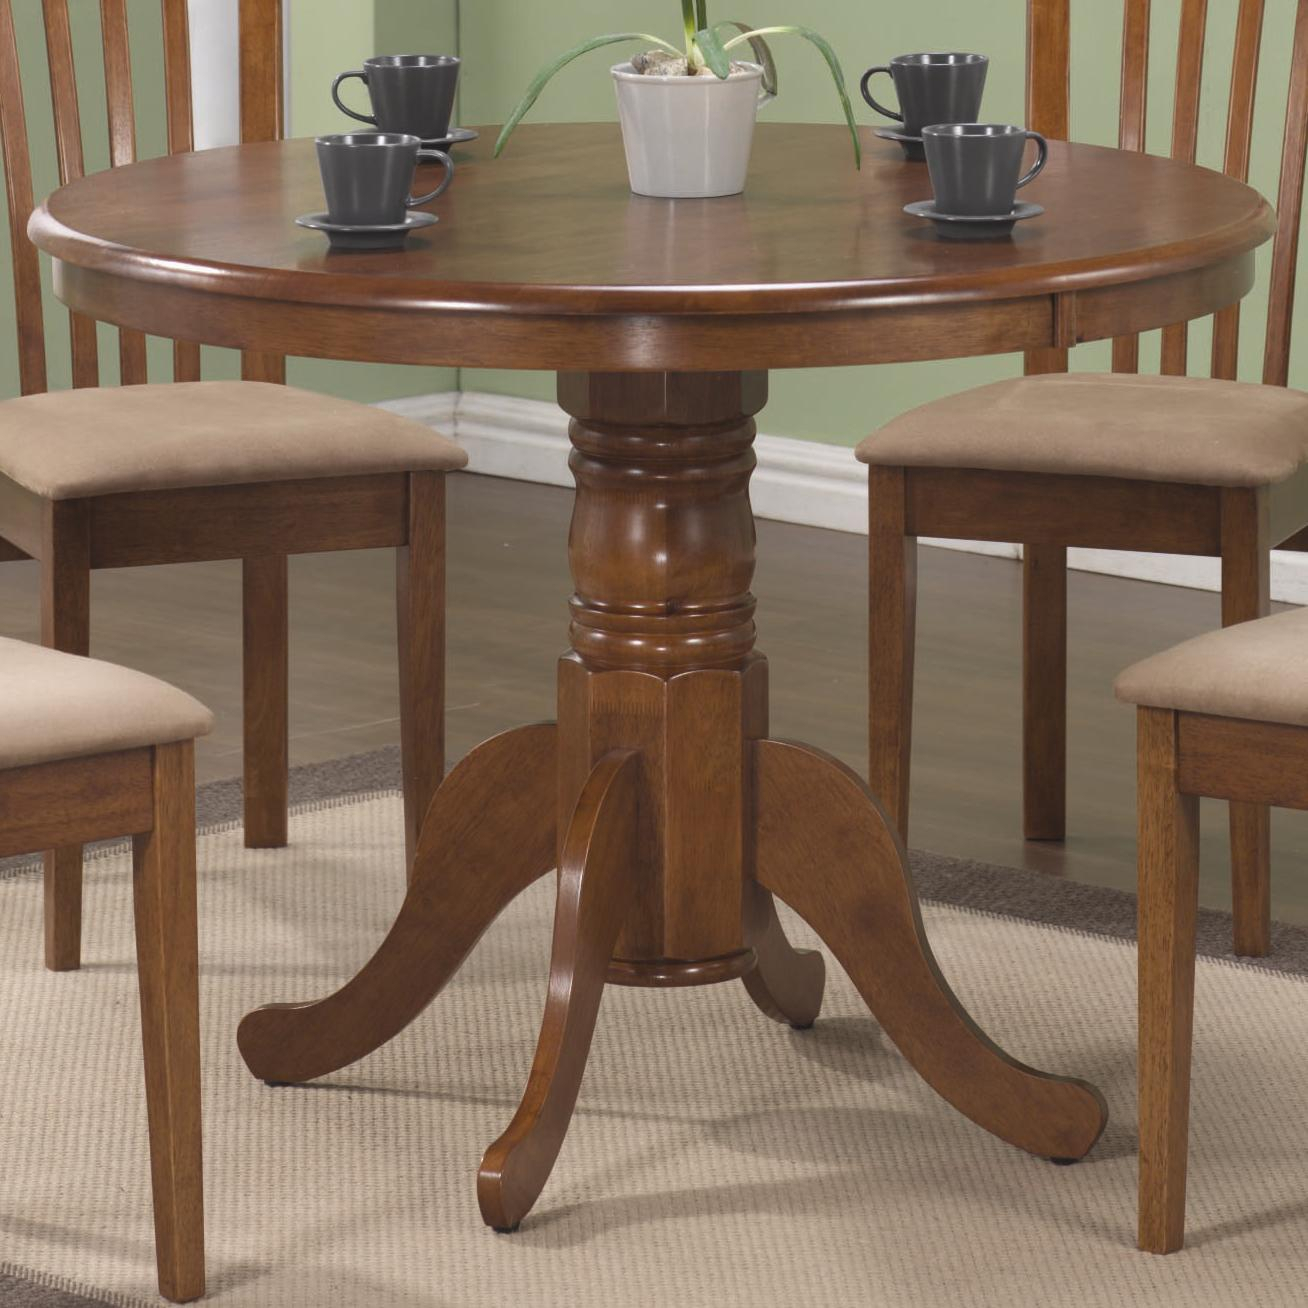 Brannan Round Single Pedestal Dining Table | Quality Within 2018 Jazmin Pedestal Dining Tables (View 6 of 15)